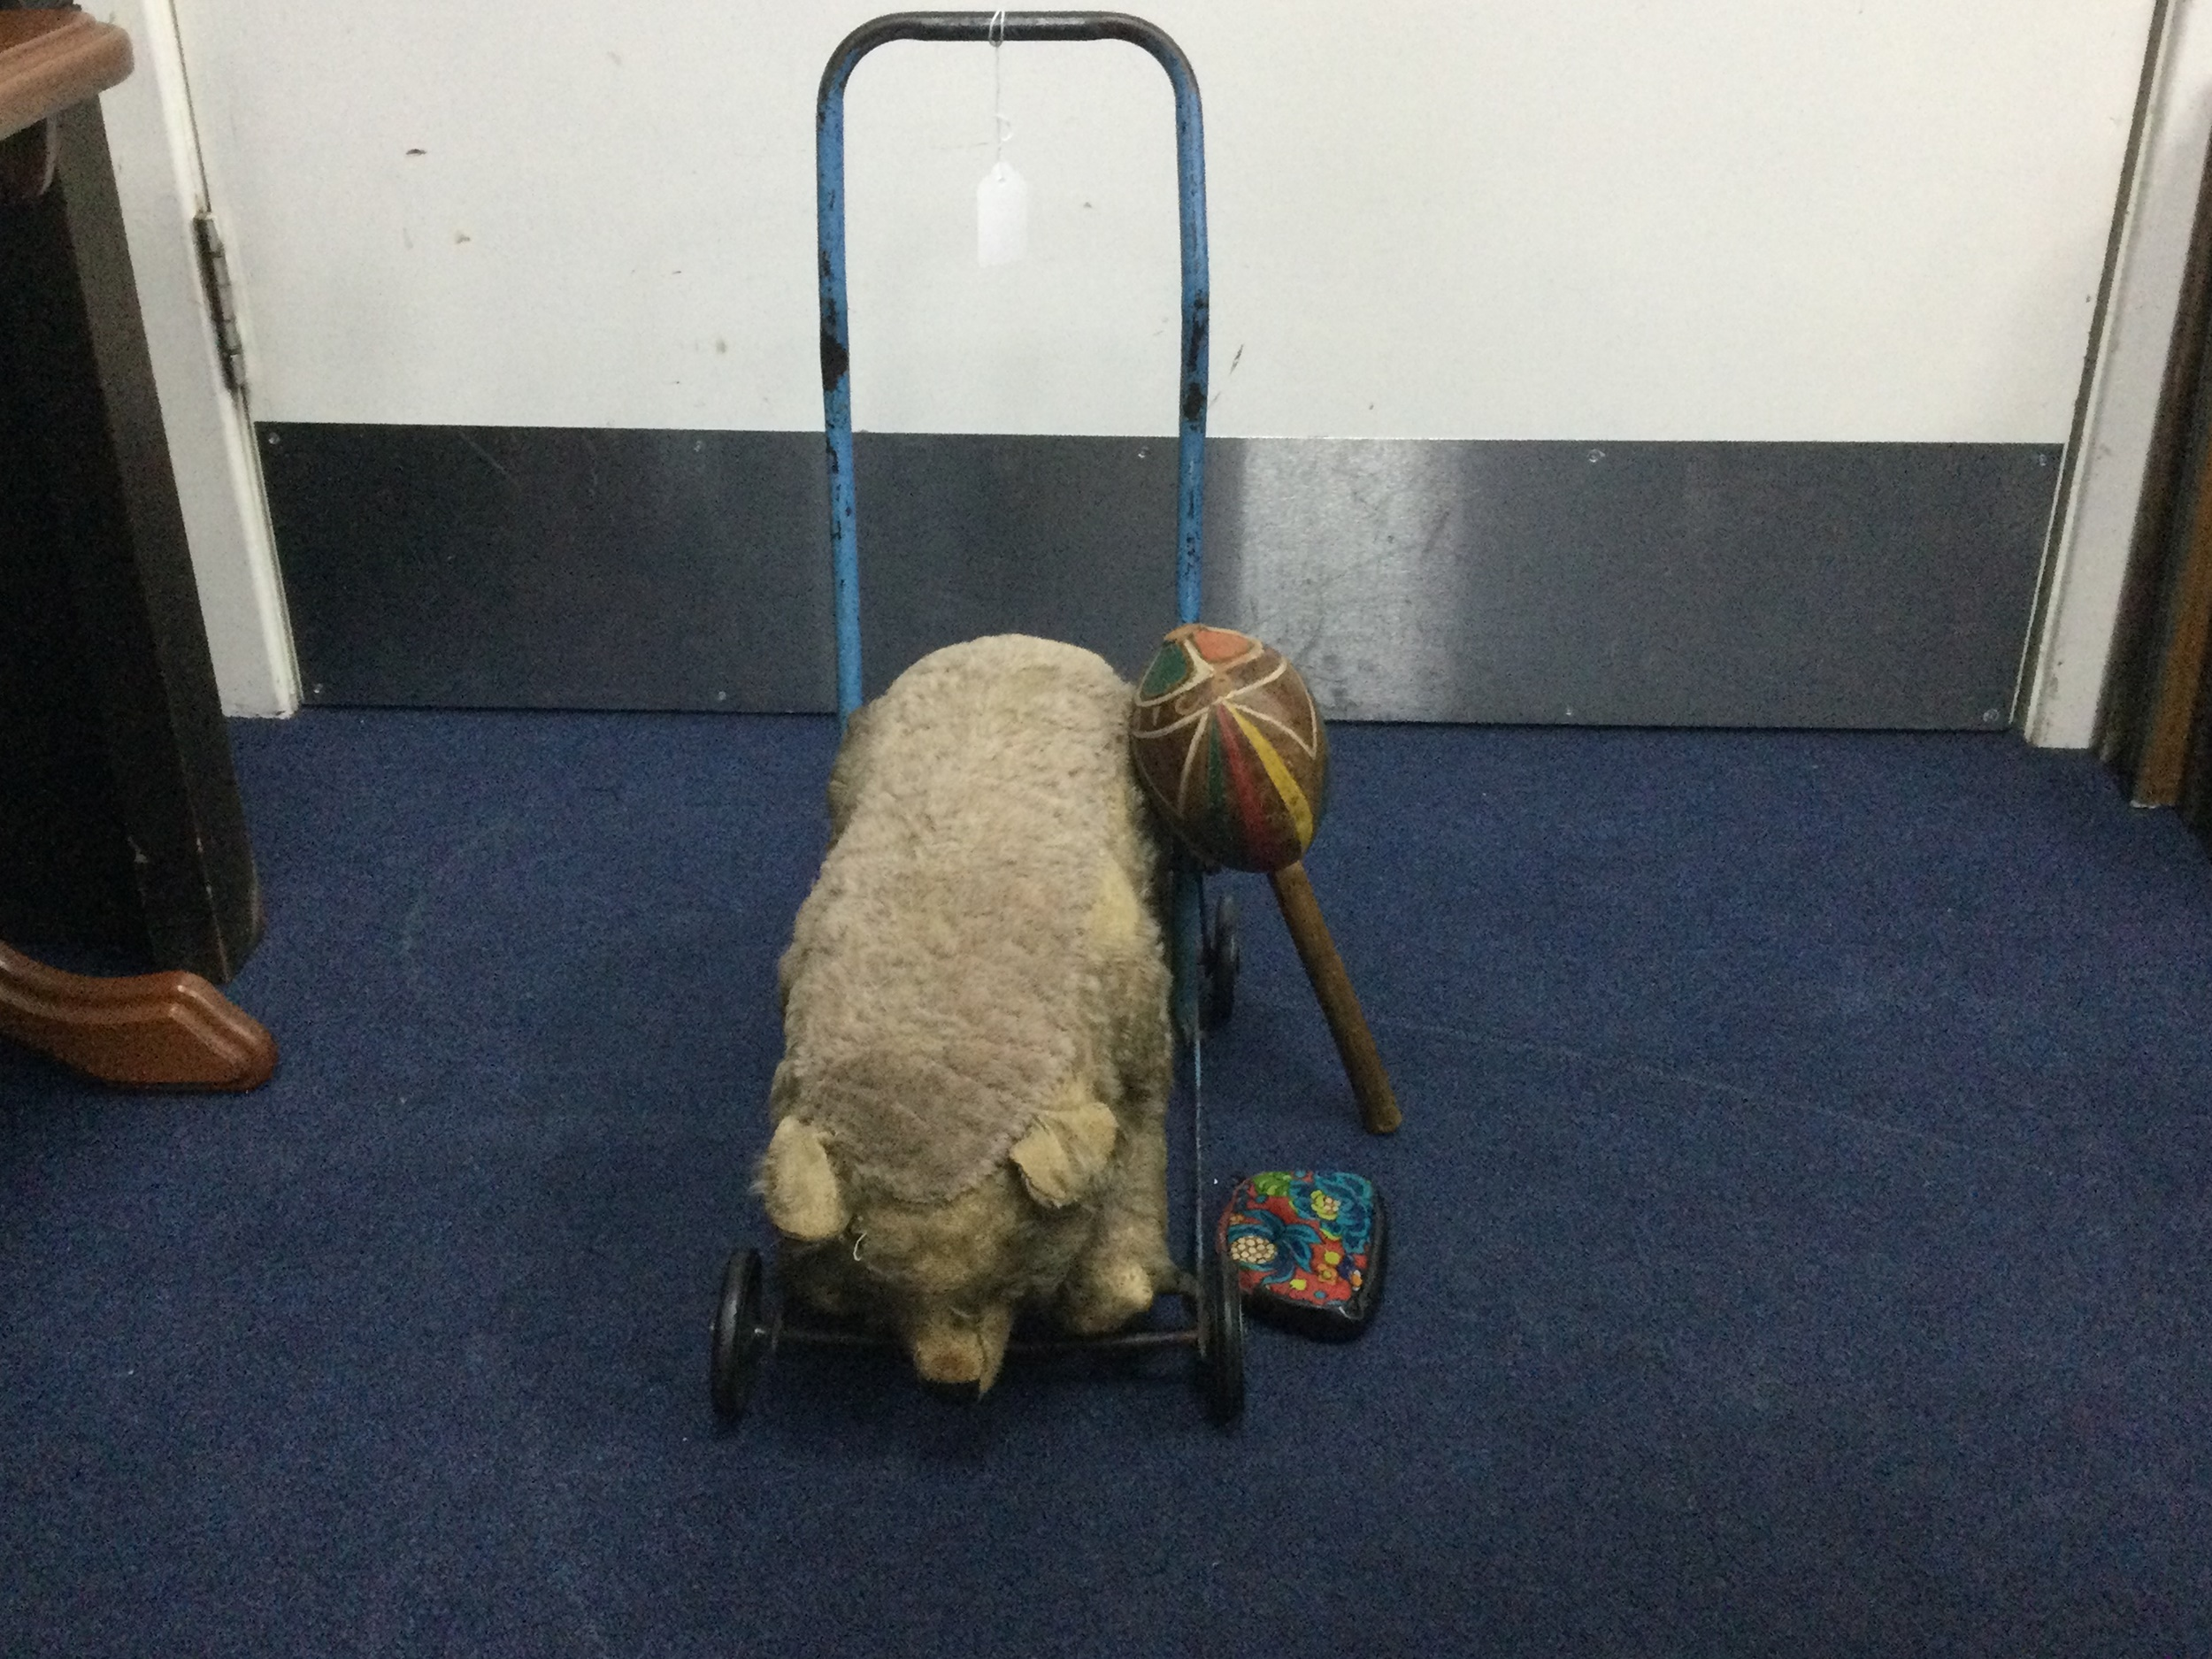 A VINTAGE PUSH ALONG TOY WITH A STUFFED BEAR AND OTHER ITEMS